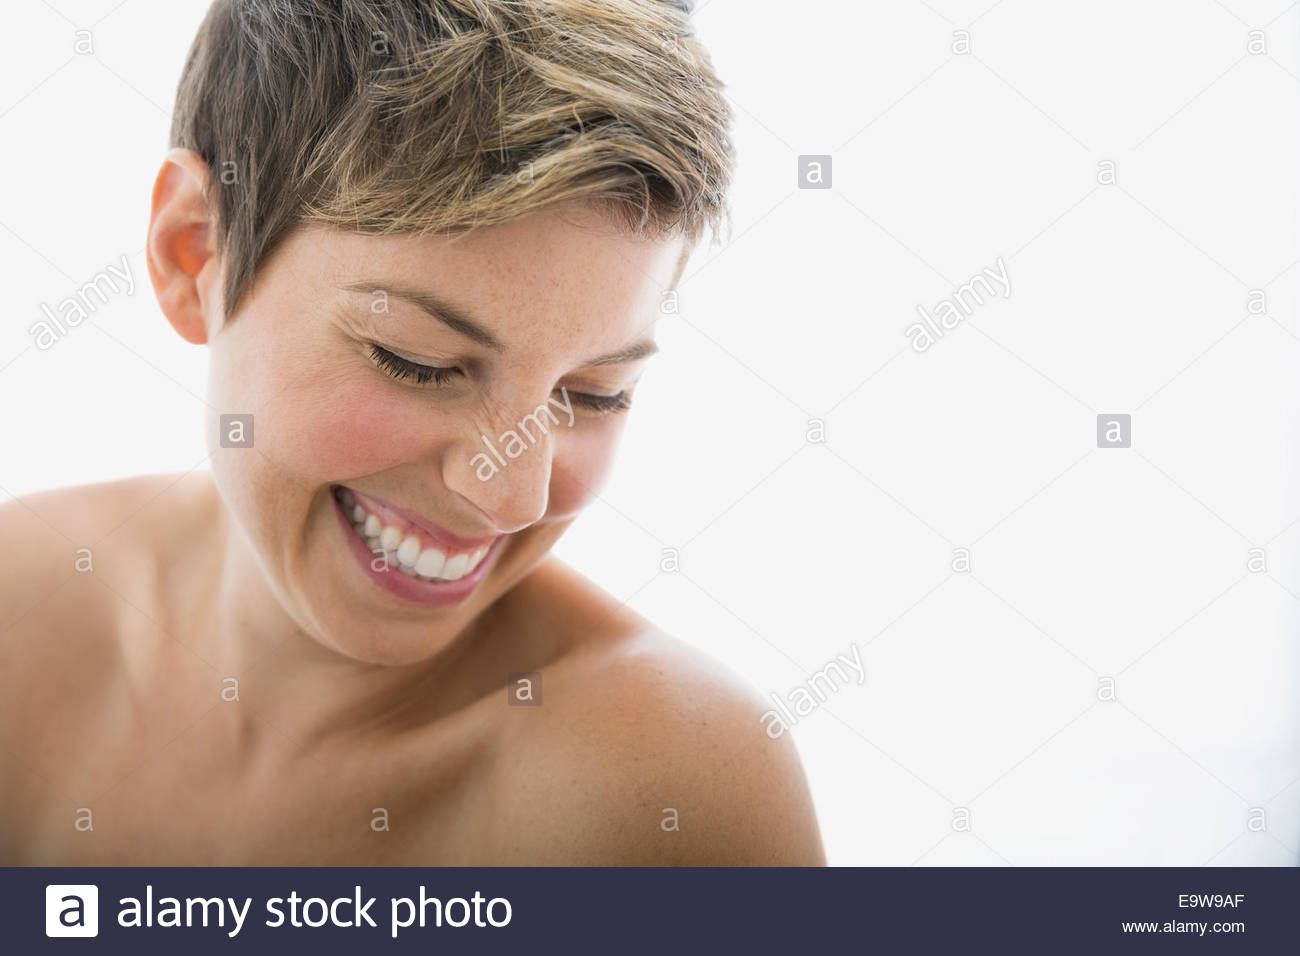 Laughing woman with bare chest looking down - Stock Image